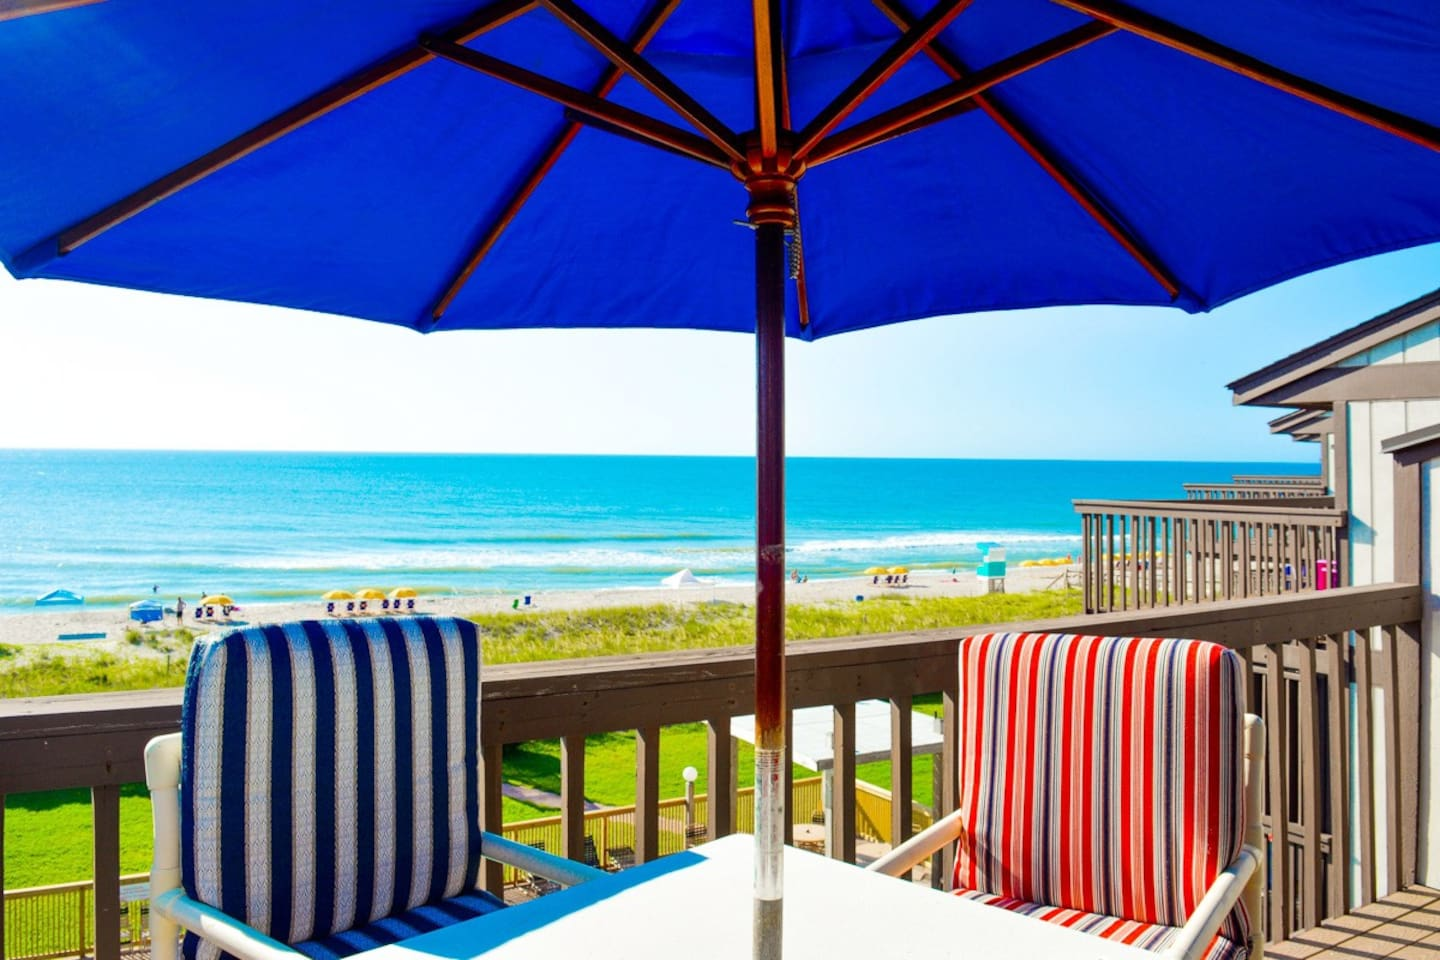 'Very clean with a great view and beach. It is very accurately described. We would stay there again if in the area and recommend it to others.' Mark C, Sept '17